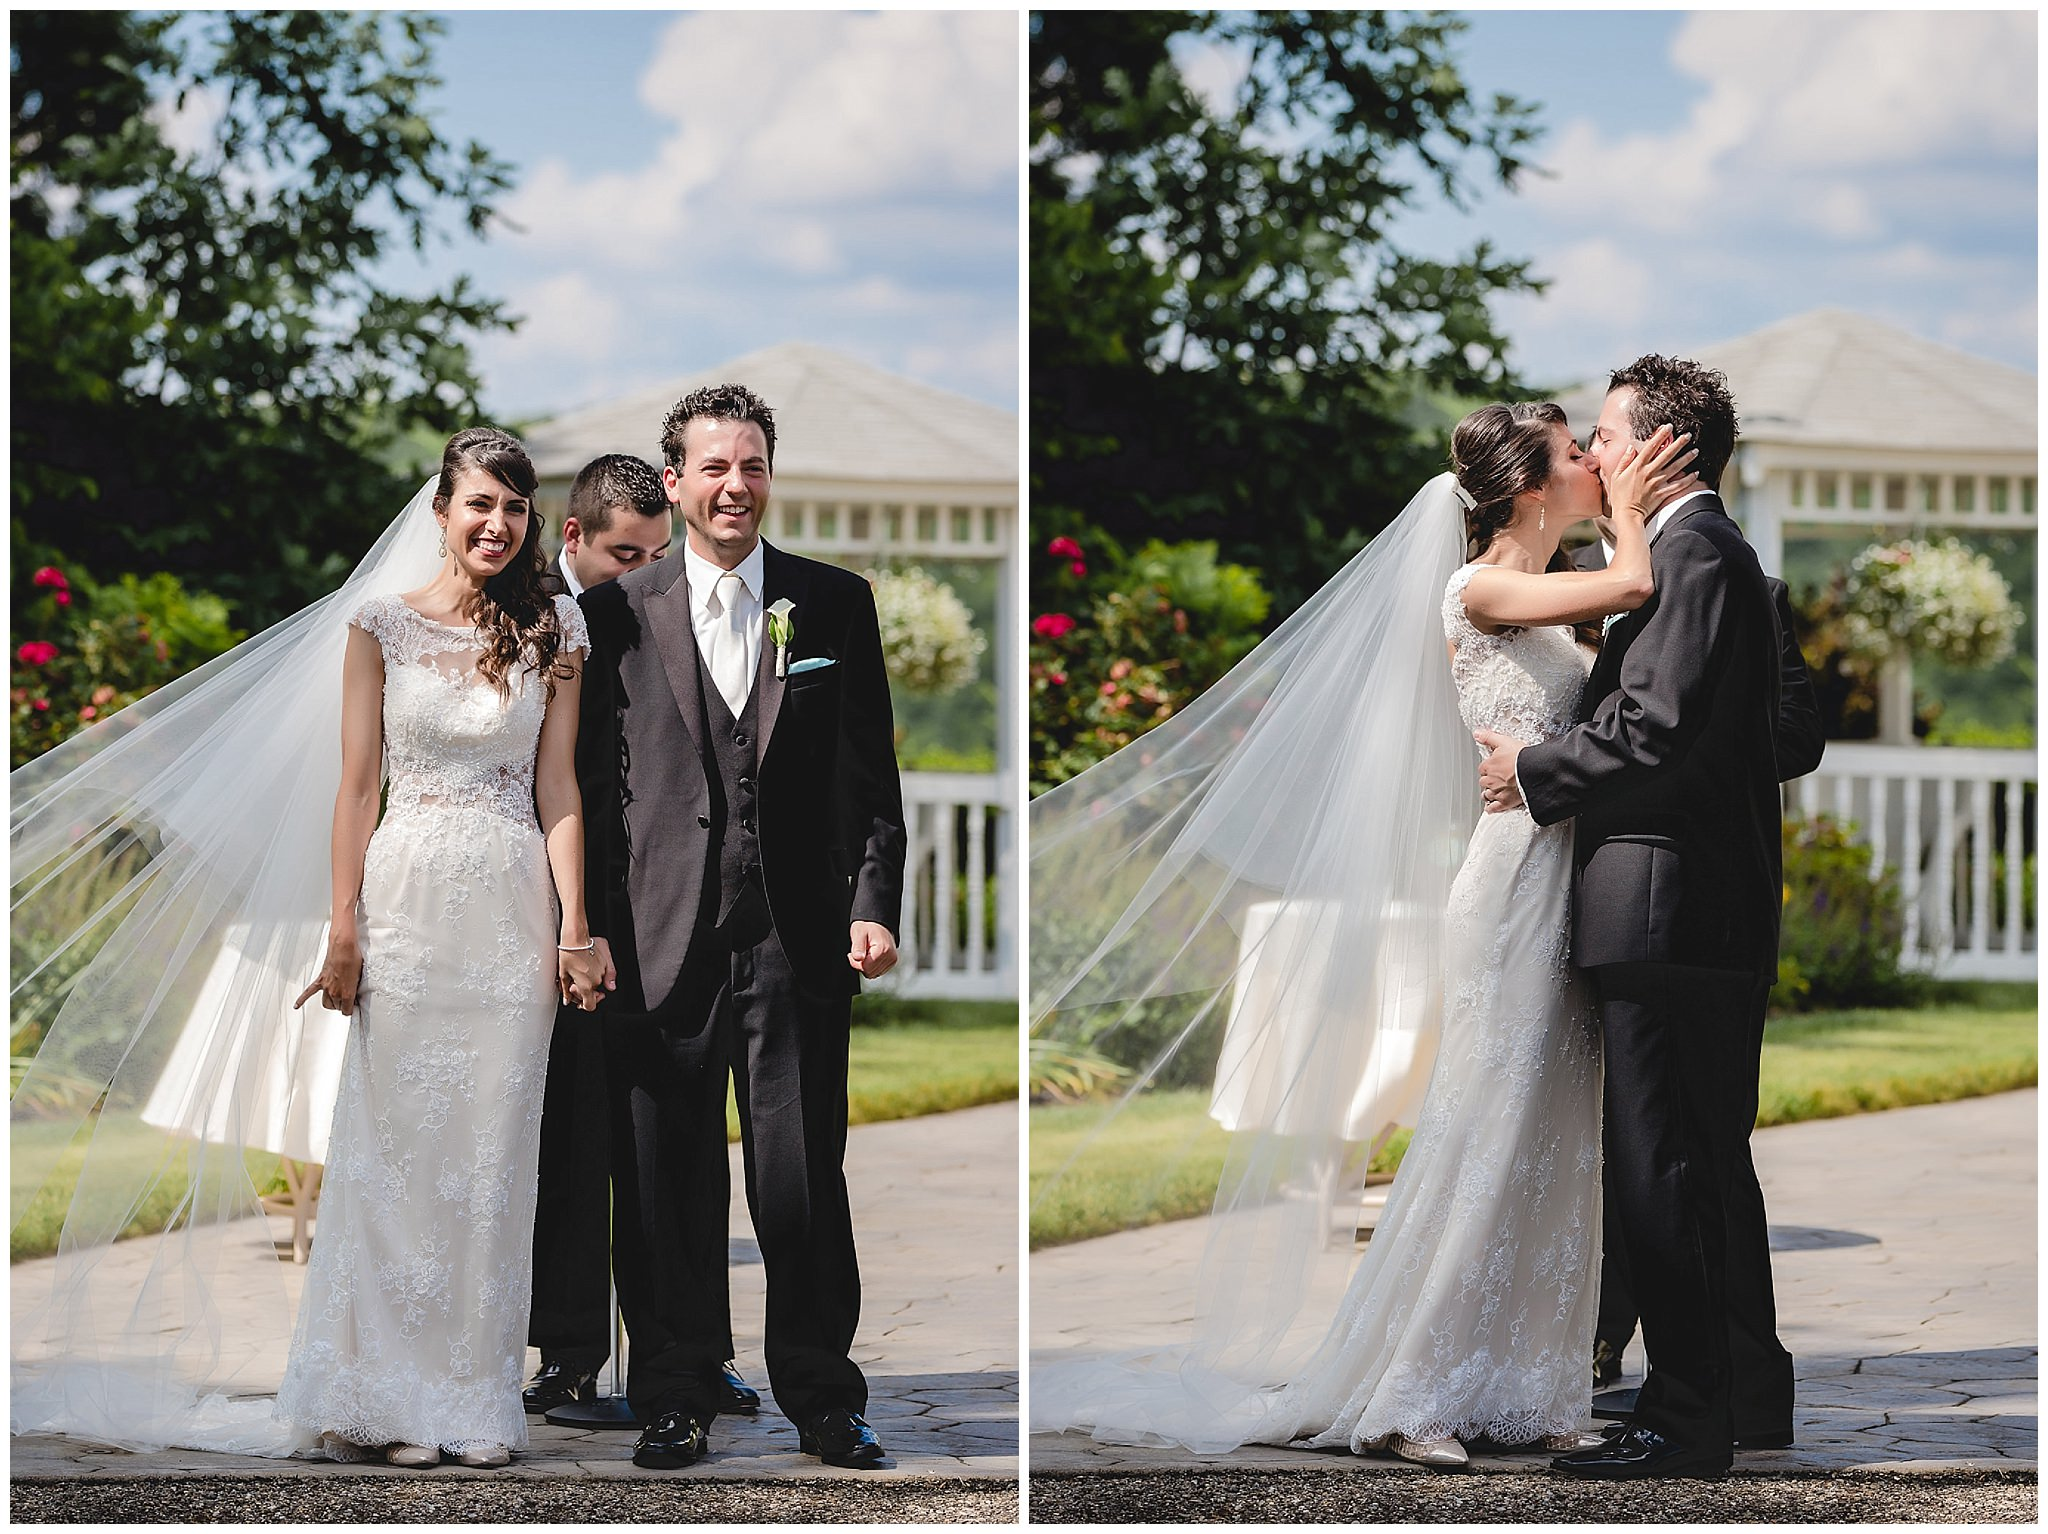 Bride and groom's first kiss during their wedding ceremony